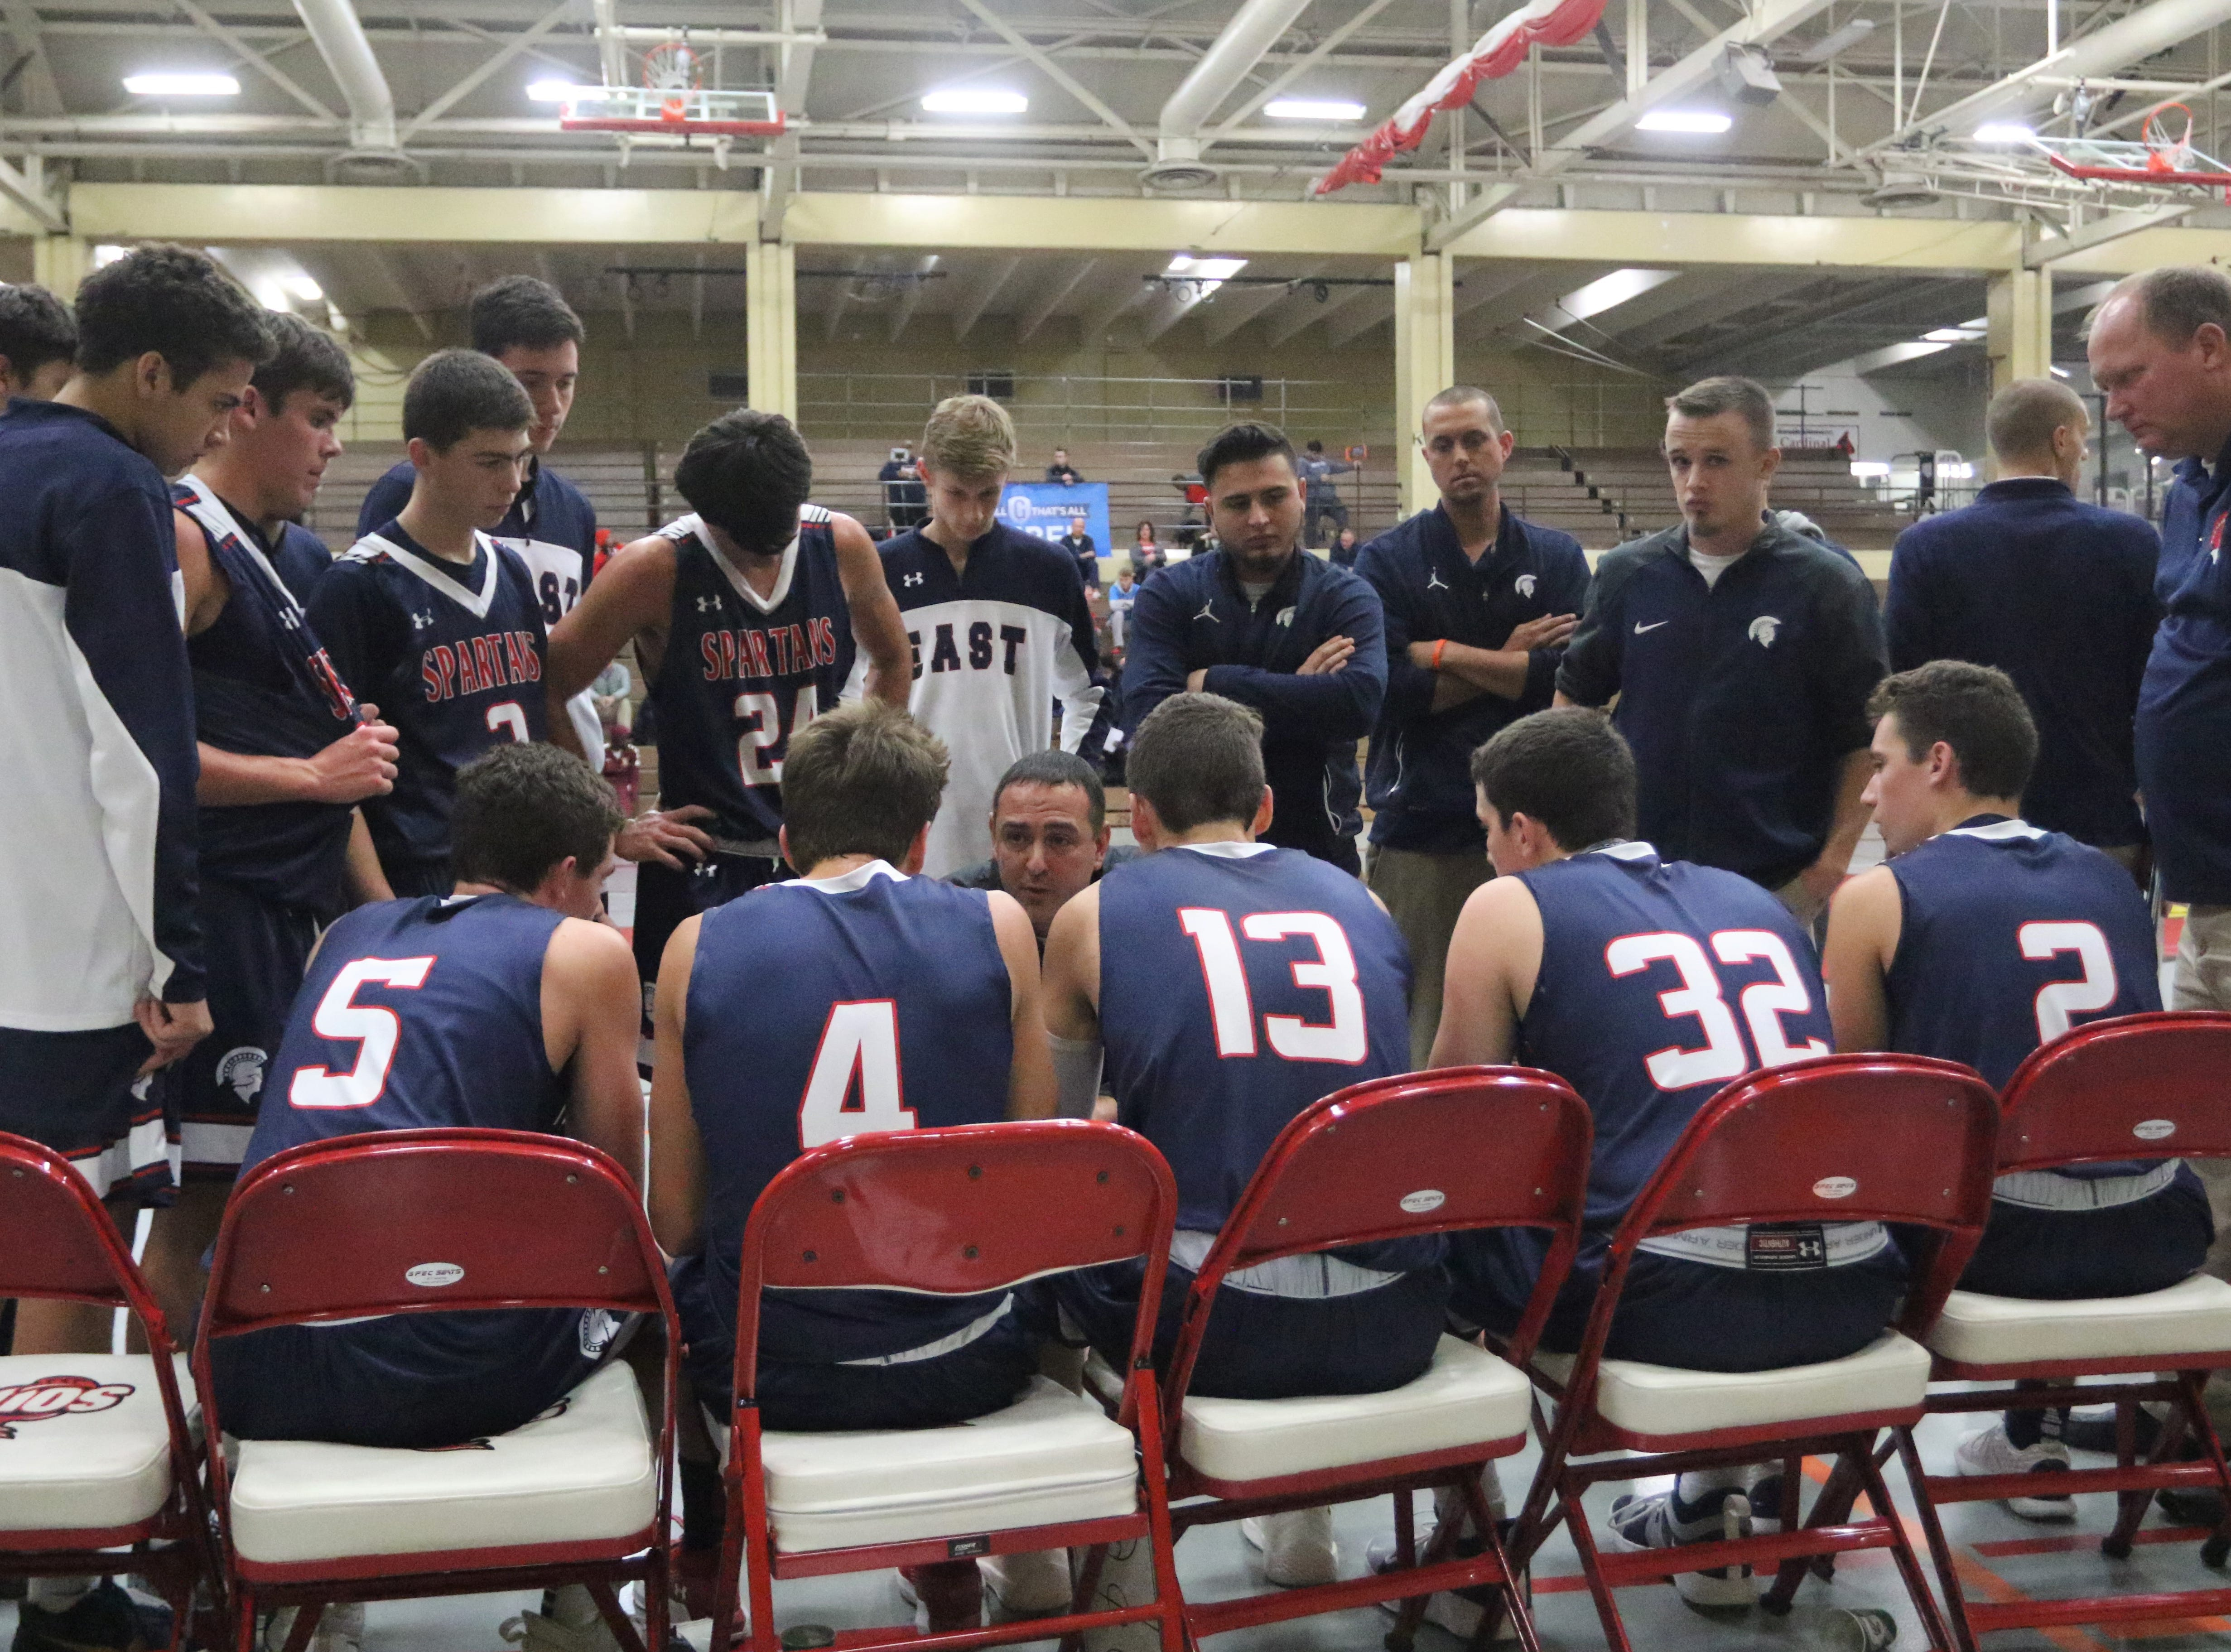 Brookfield East head coach Joe Rux instructs his players during a timeout while playing against Milwaukee Riverside during the Terry Porter Classic on Saturday.